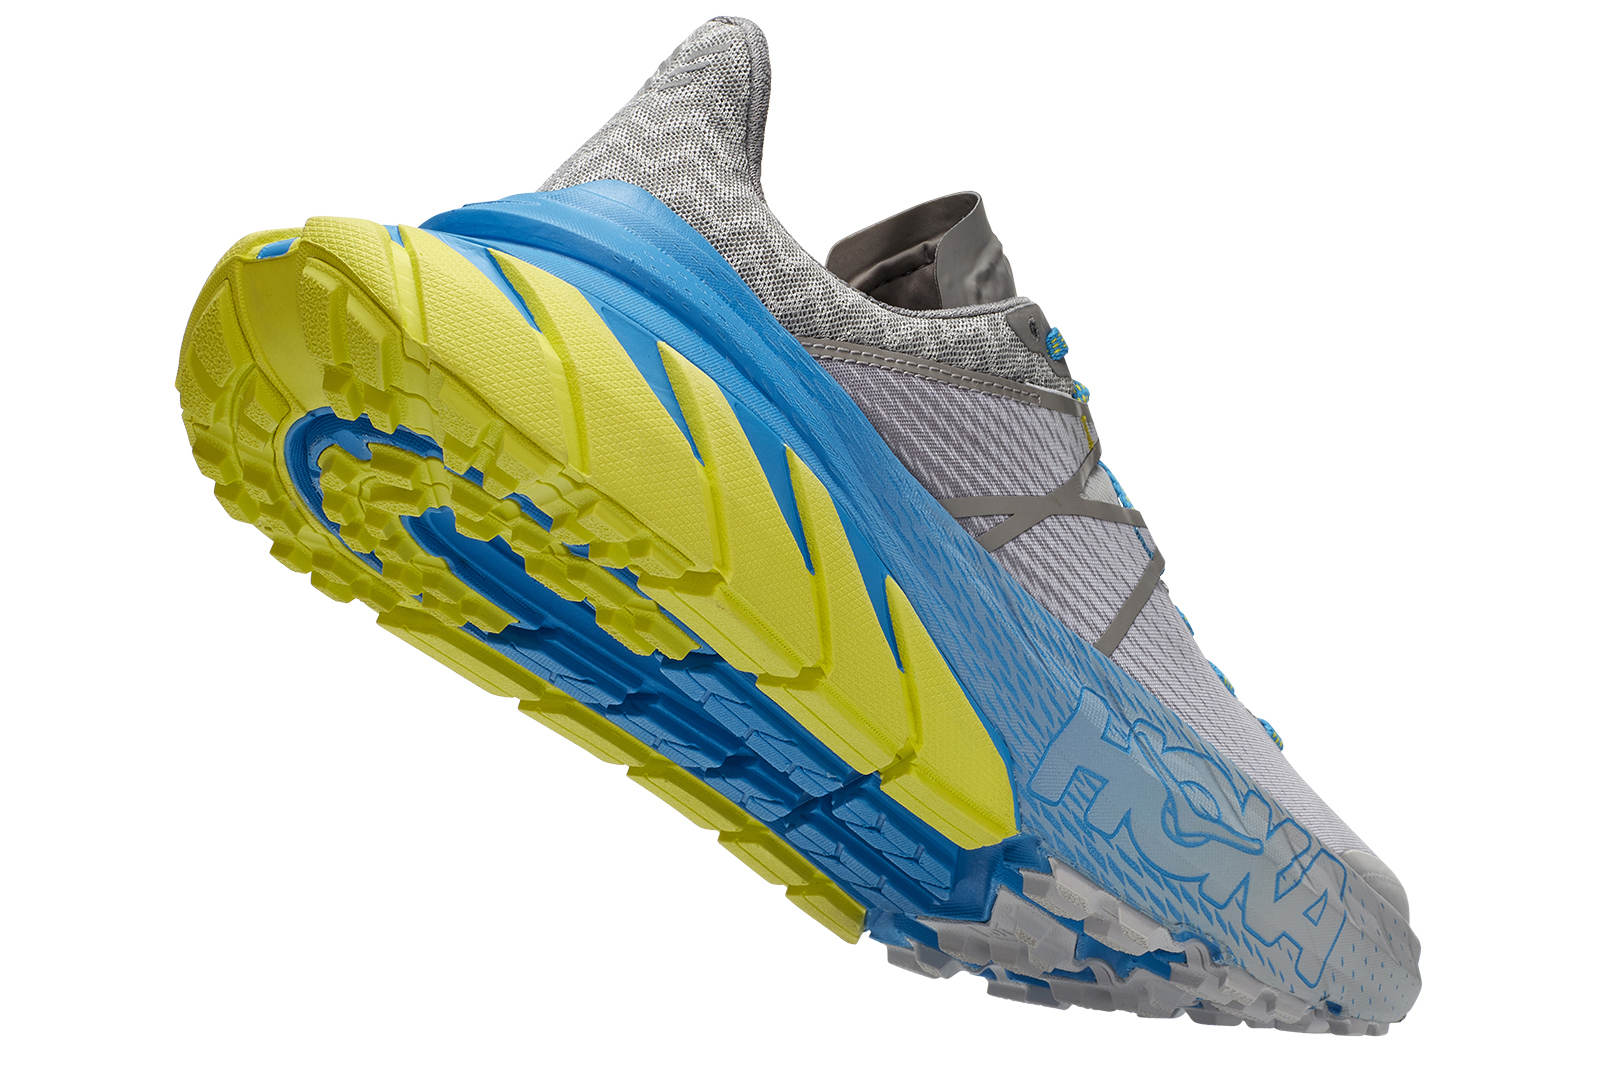 HOKA ONE ONE TenNine running shoe